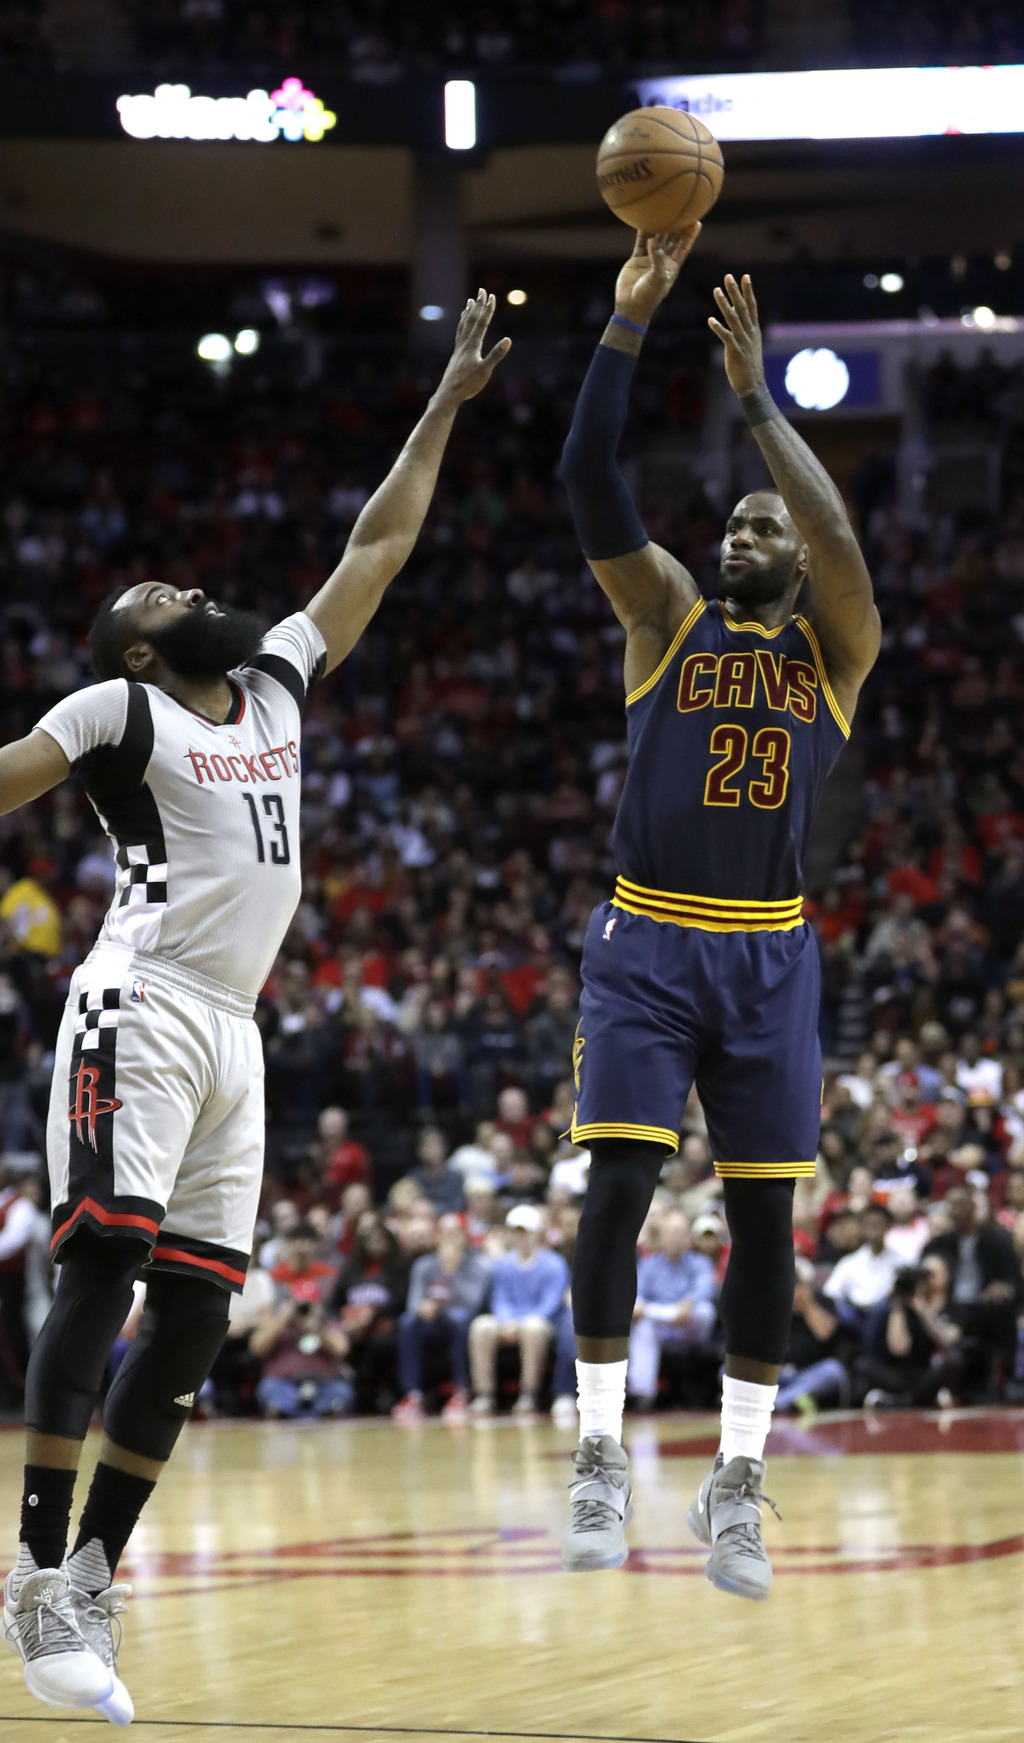 Cleveland Cavaliers' LeBron James (23) shoots as Houston Rockets' James Harden (13) defends during the first quarter of an NBA basketba...